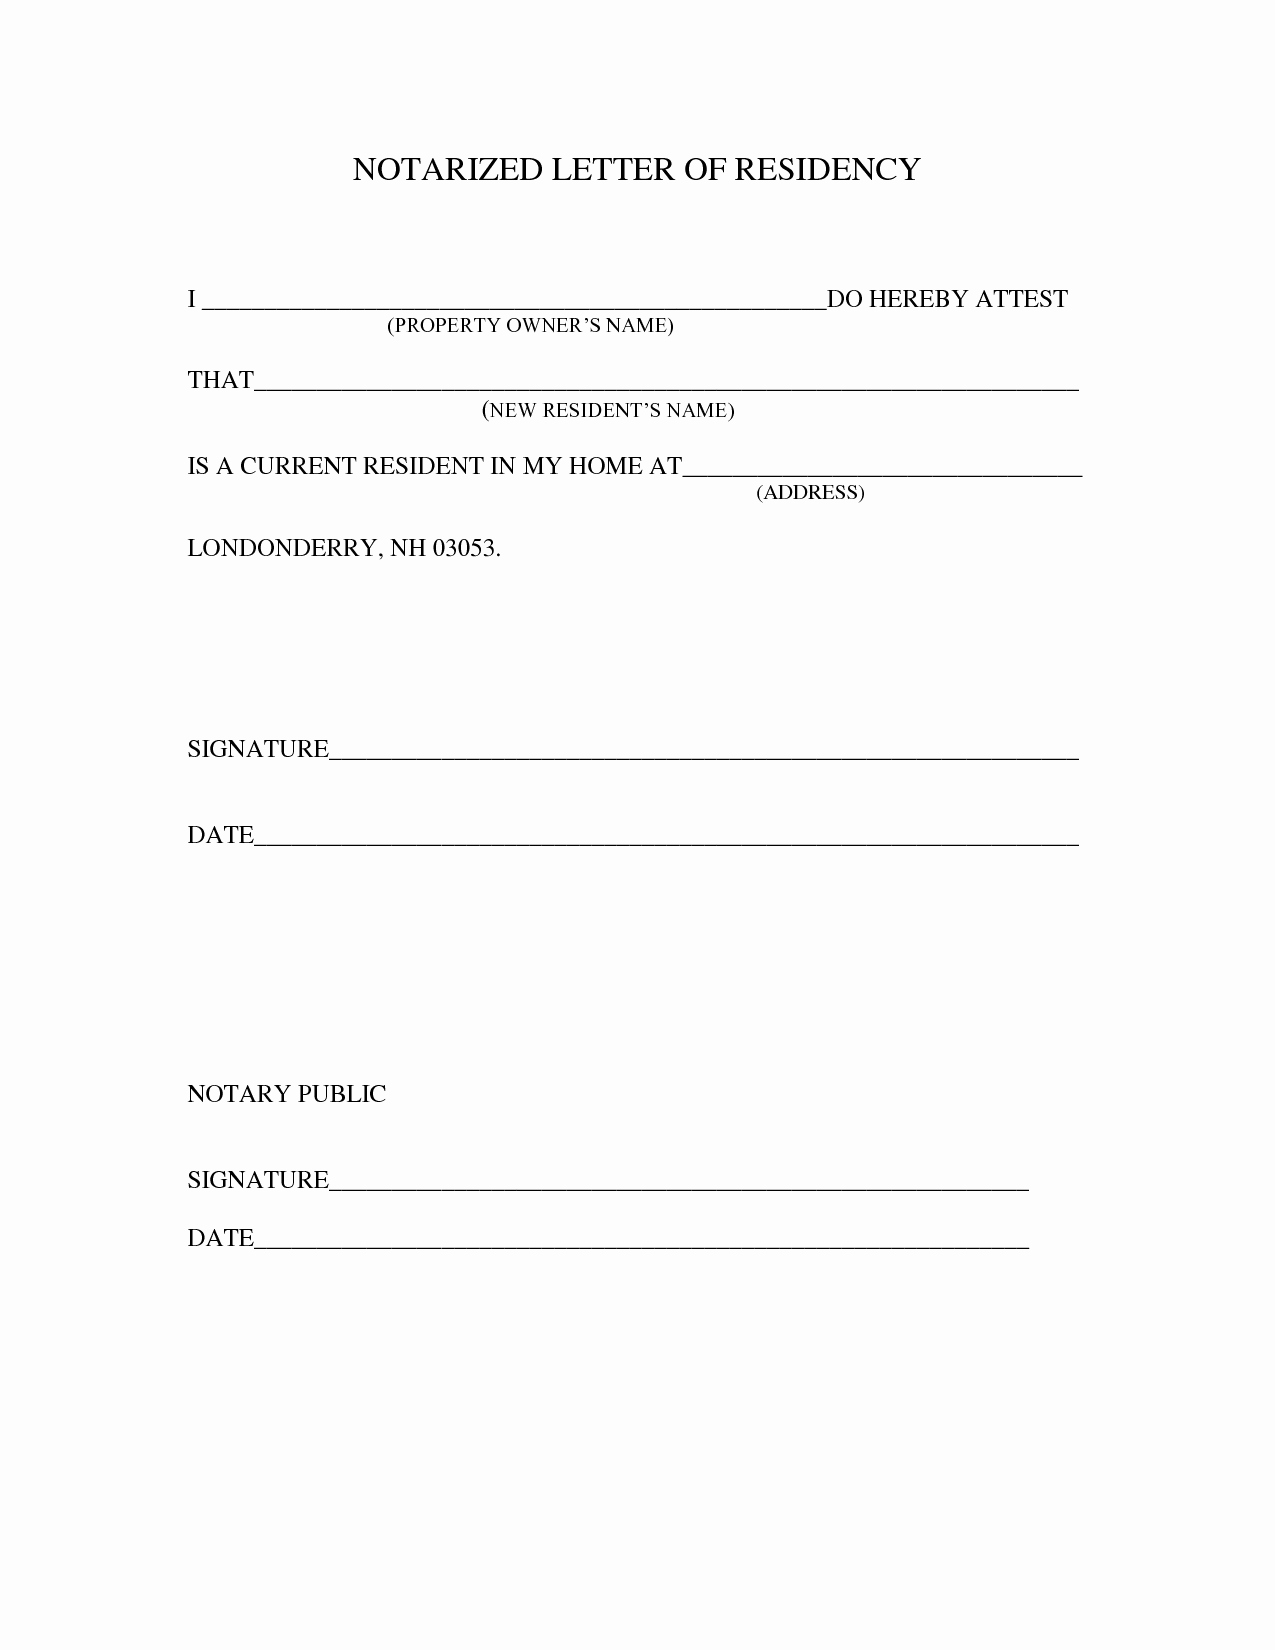 How to Notarize A Letter New Sample Notarized Letter Template